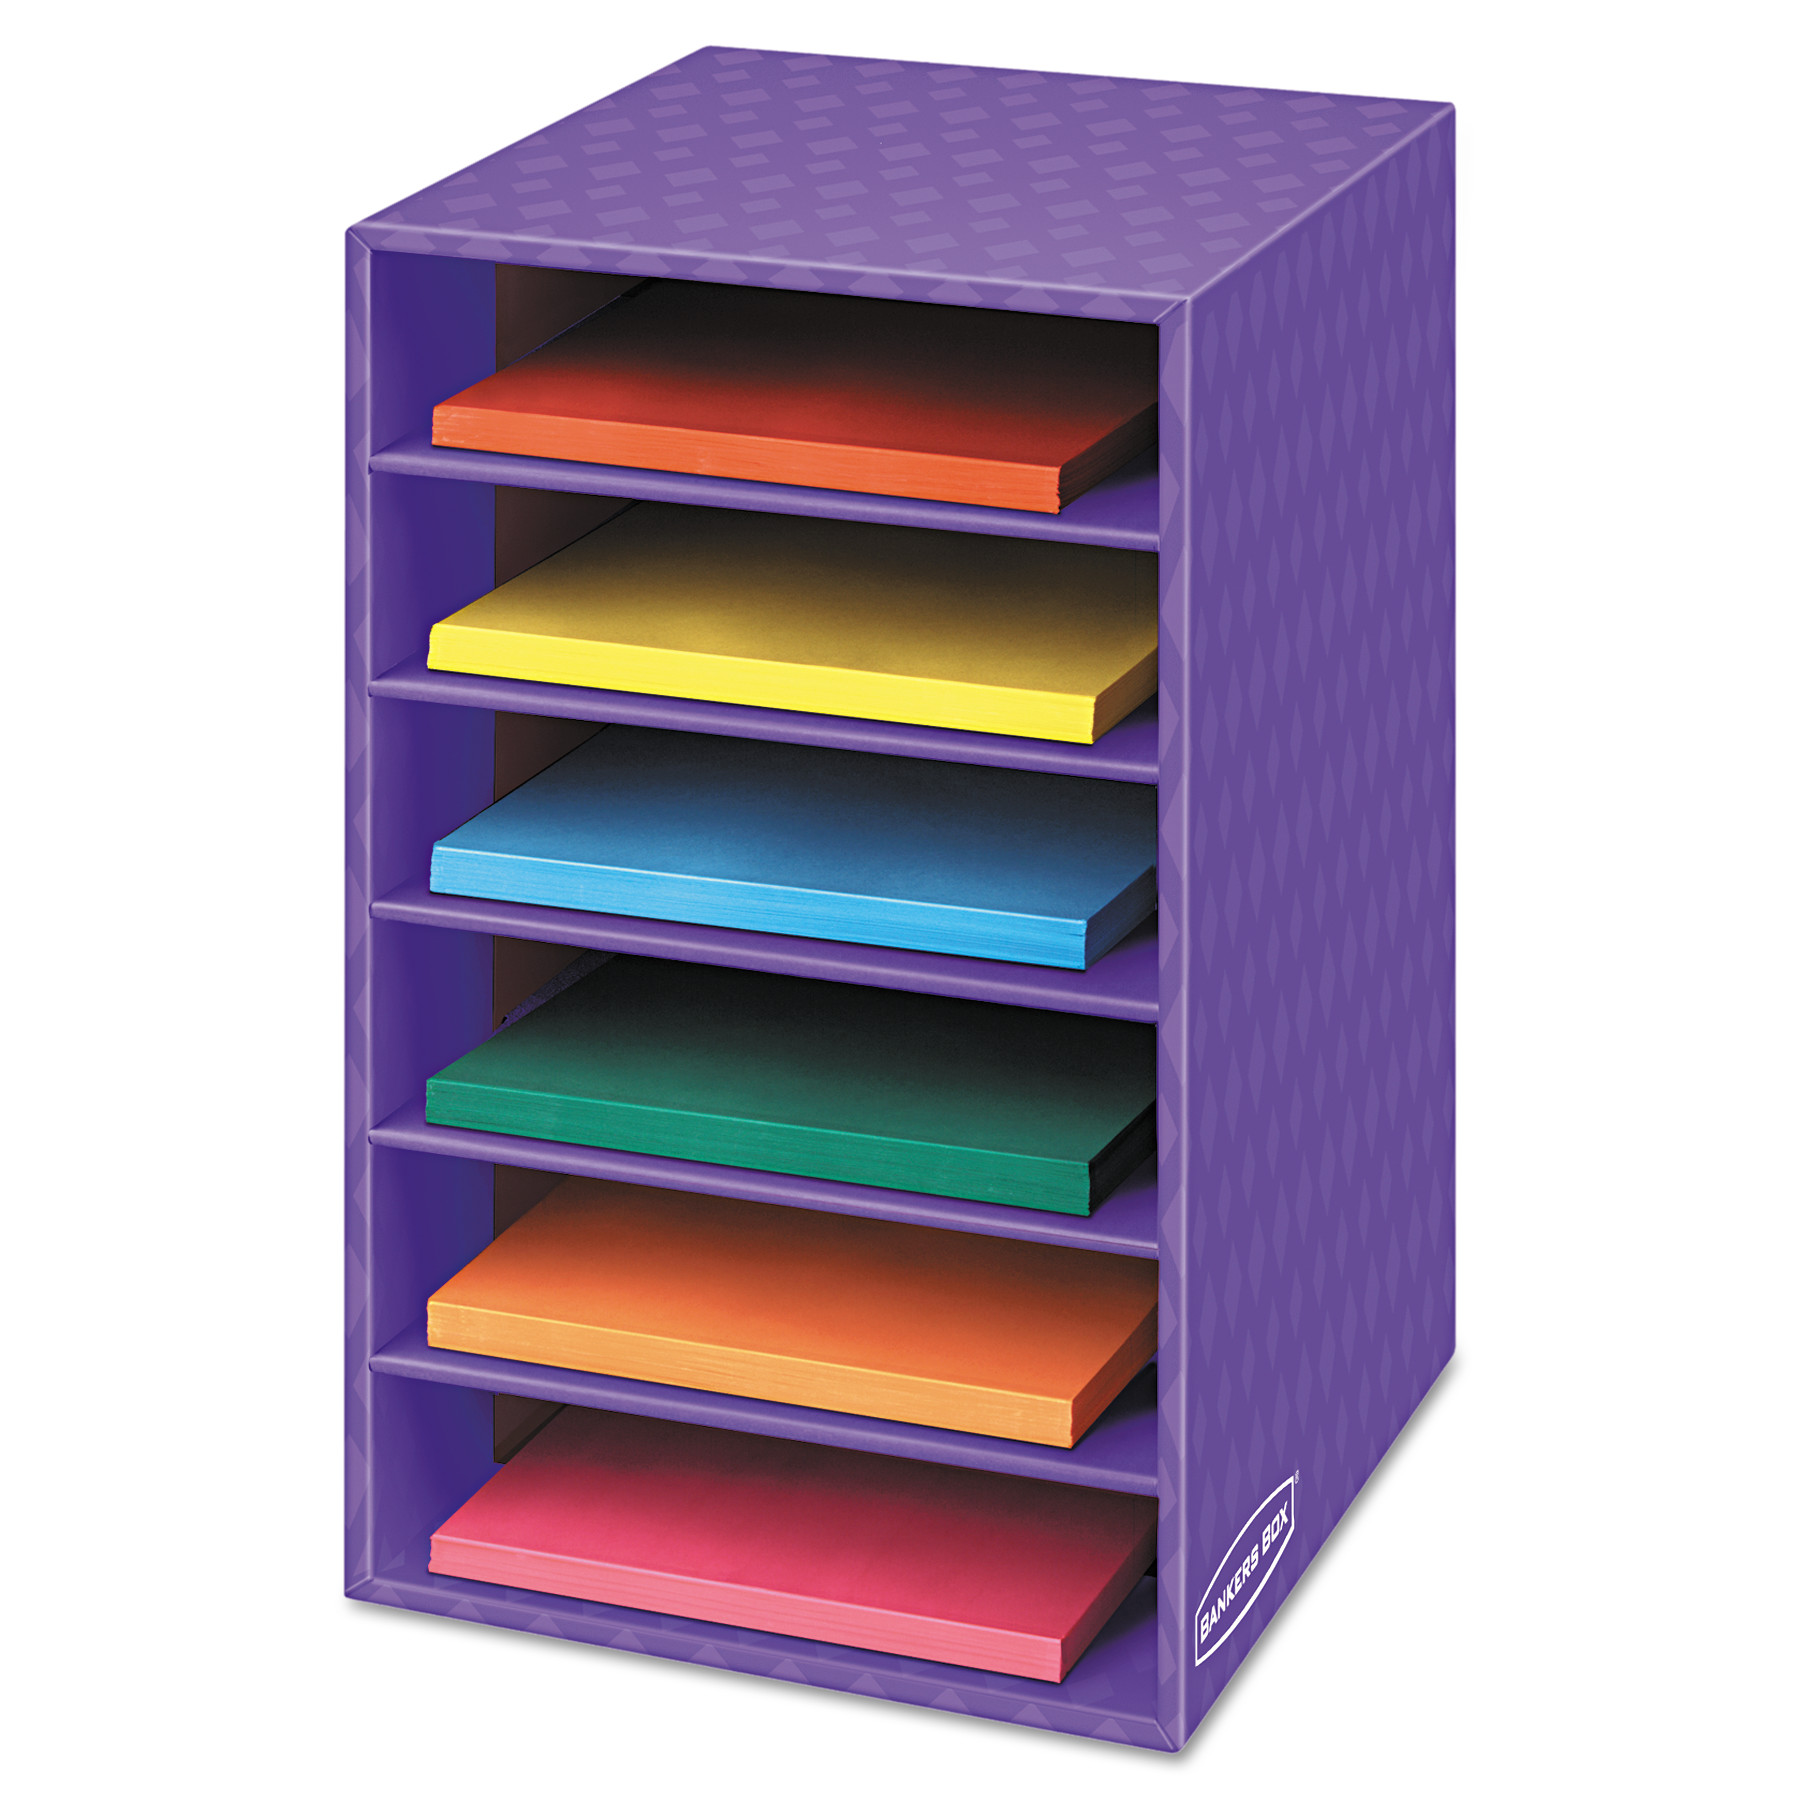 Bankers Box Classroom Organizer, 6 shelves, 11 7/8 x 13 1/4 x 18, Purple